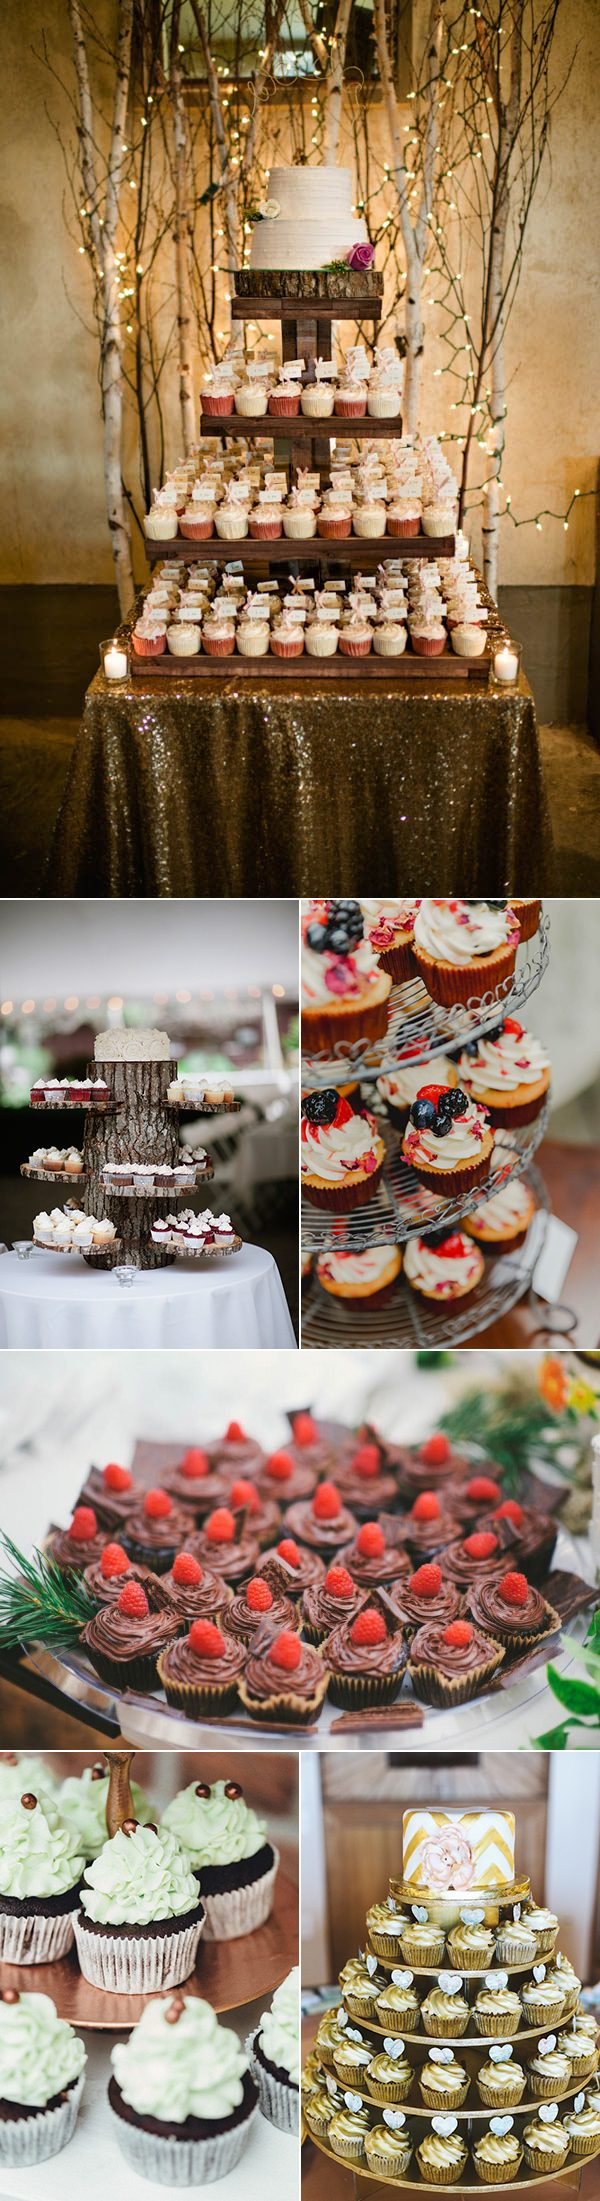 wedding-cupcake-display